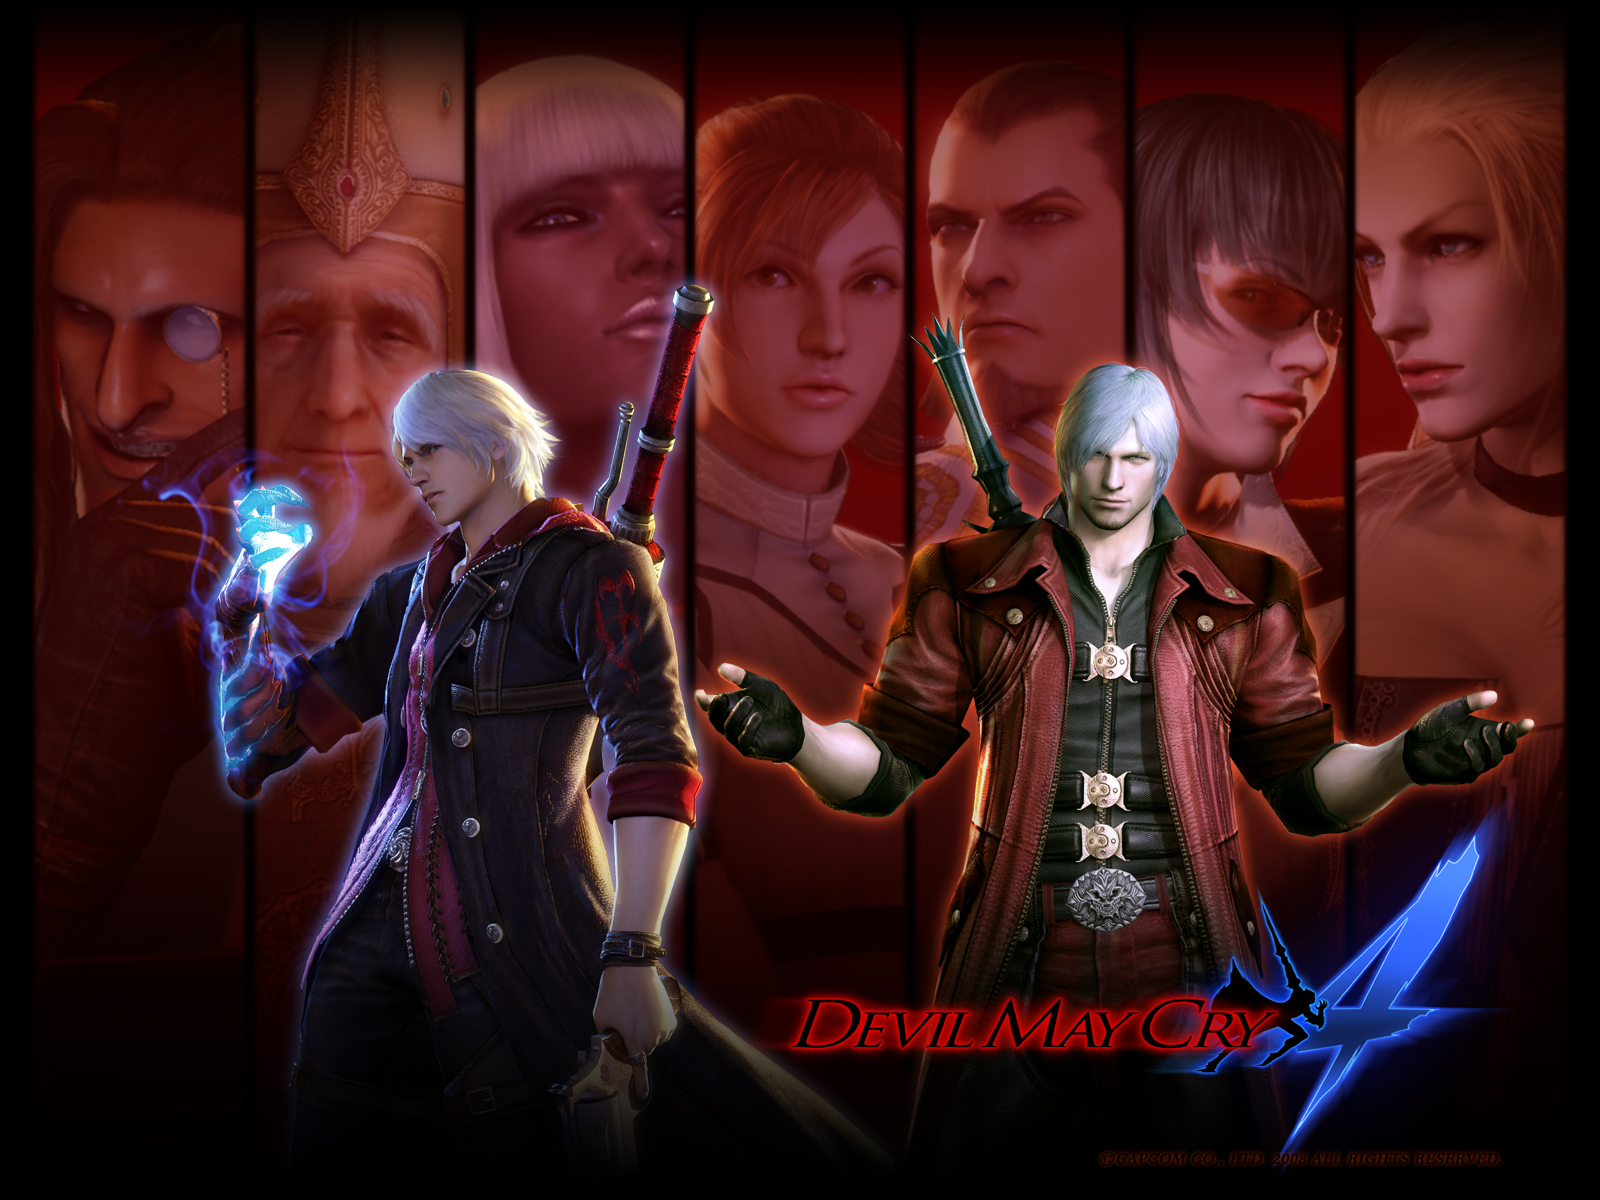 Devil May Cry 4 Wallpaper 8 Wallpapersbq